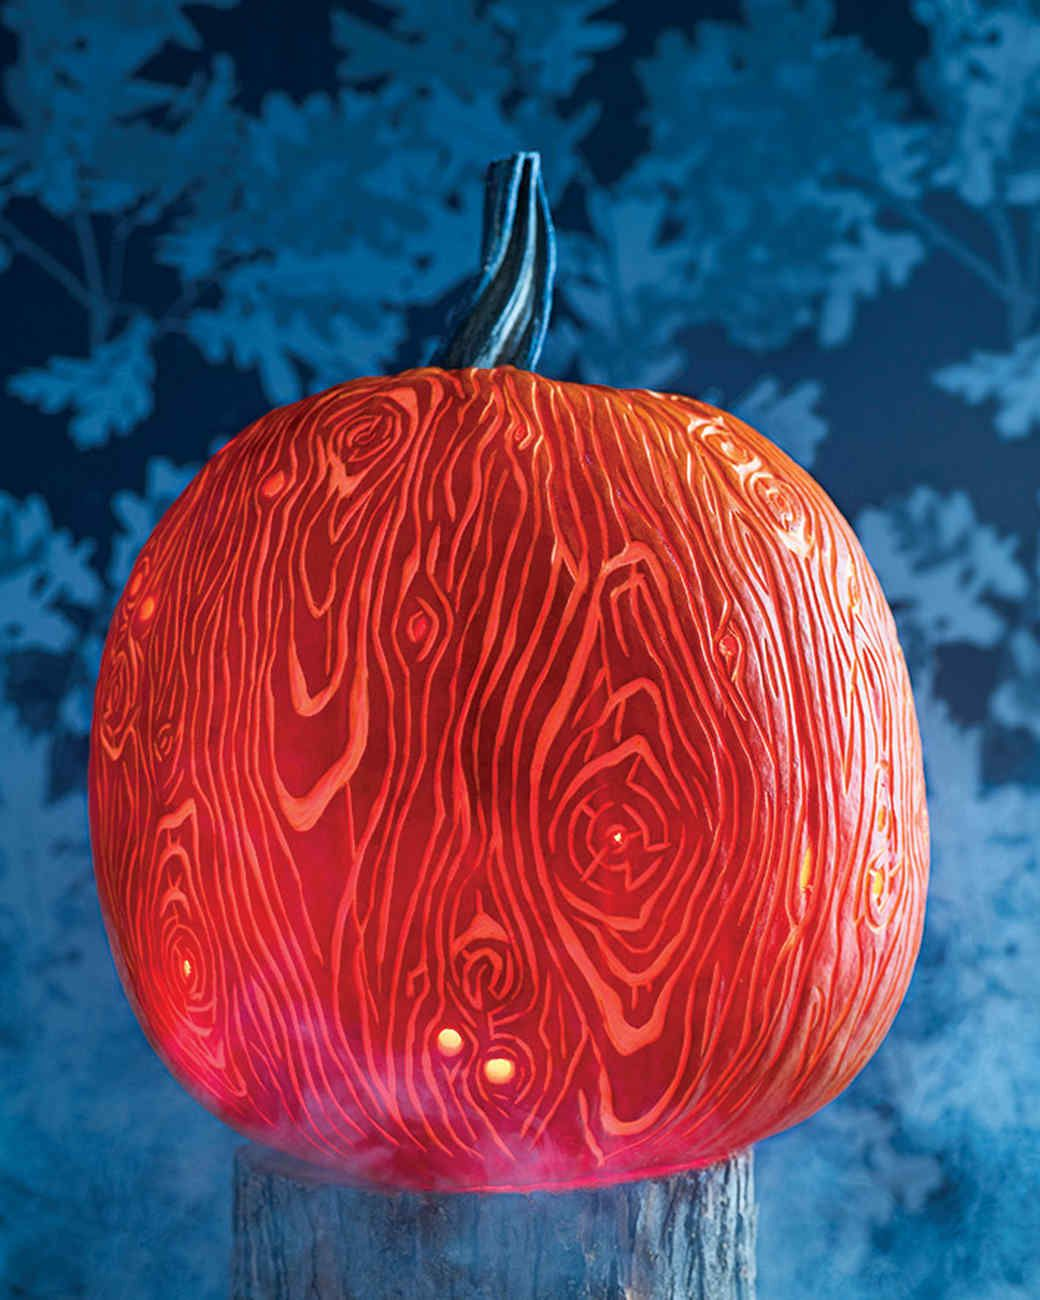 1,643 Pumpkin Carving Ideas, Stencils, and Patterns